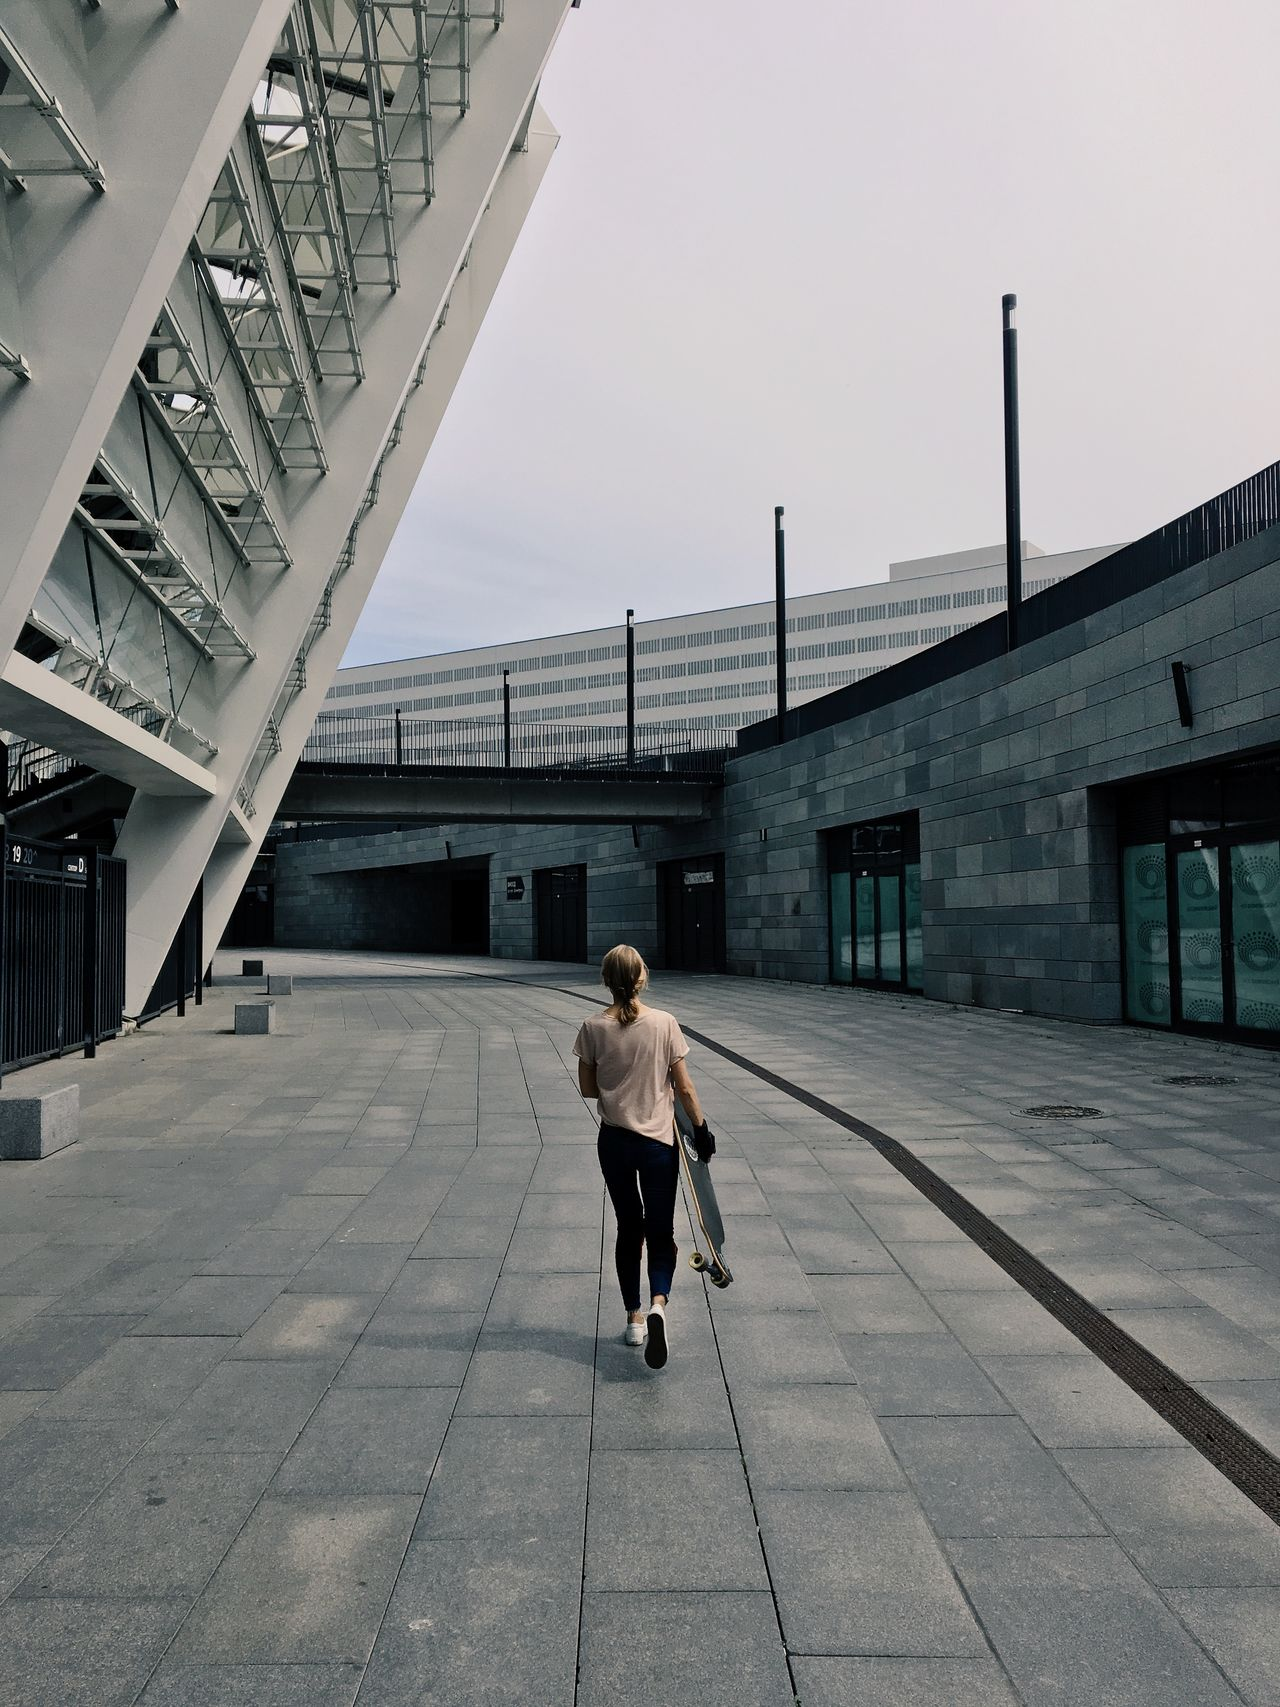 Architecture Built Structure Casual Clothing City City Life Day Diminishing Perspective Full Length Leisure Activity Lifestyles Outdoors Skateboarding Sky The Way Forward Vanishing Point Walkway